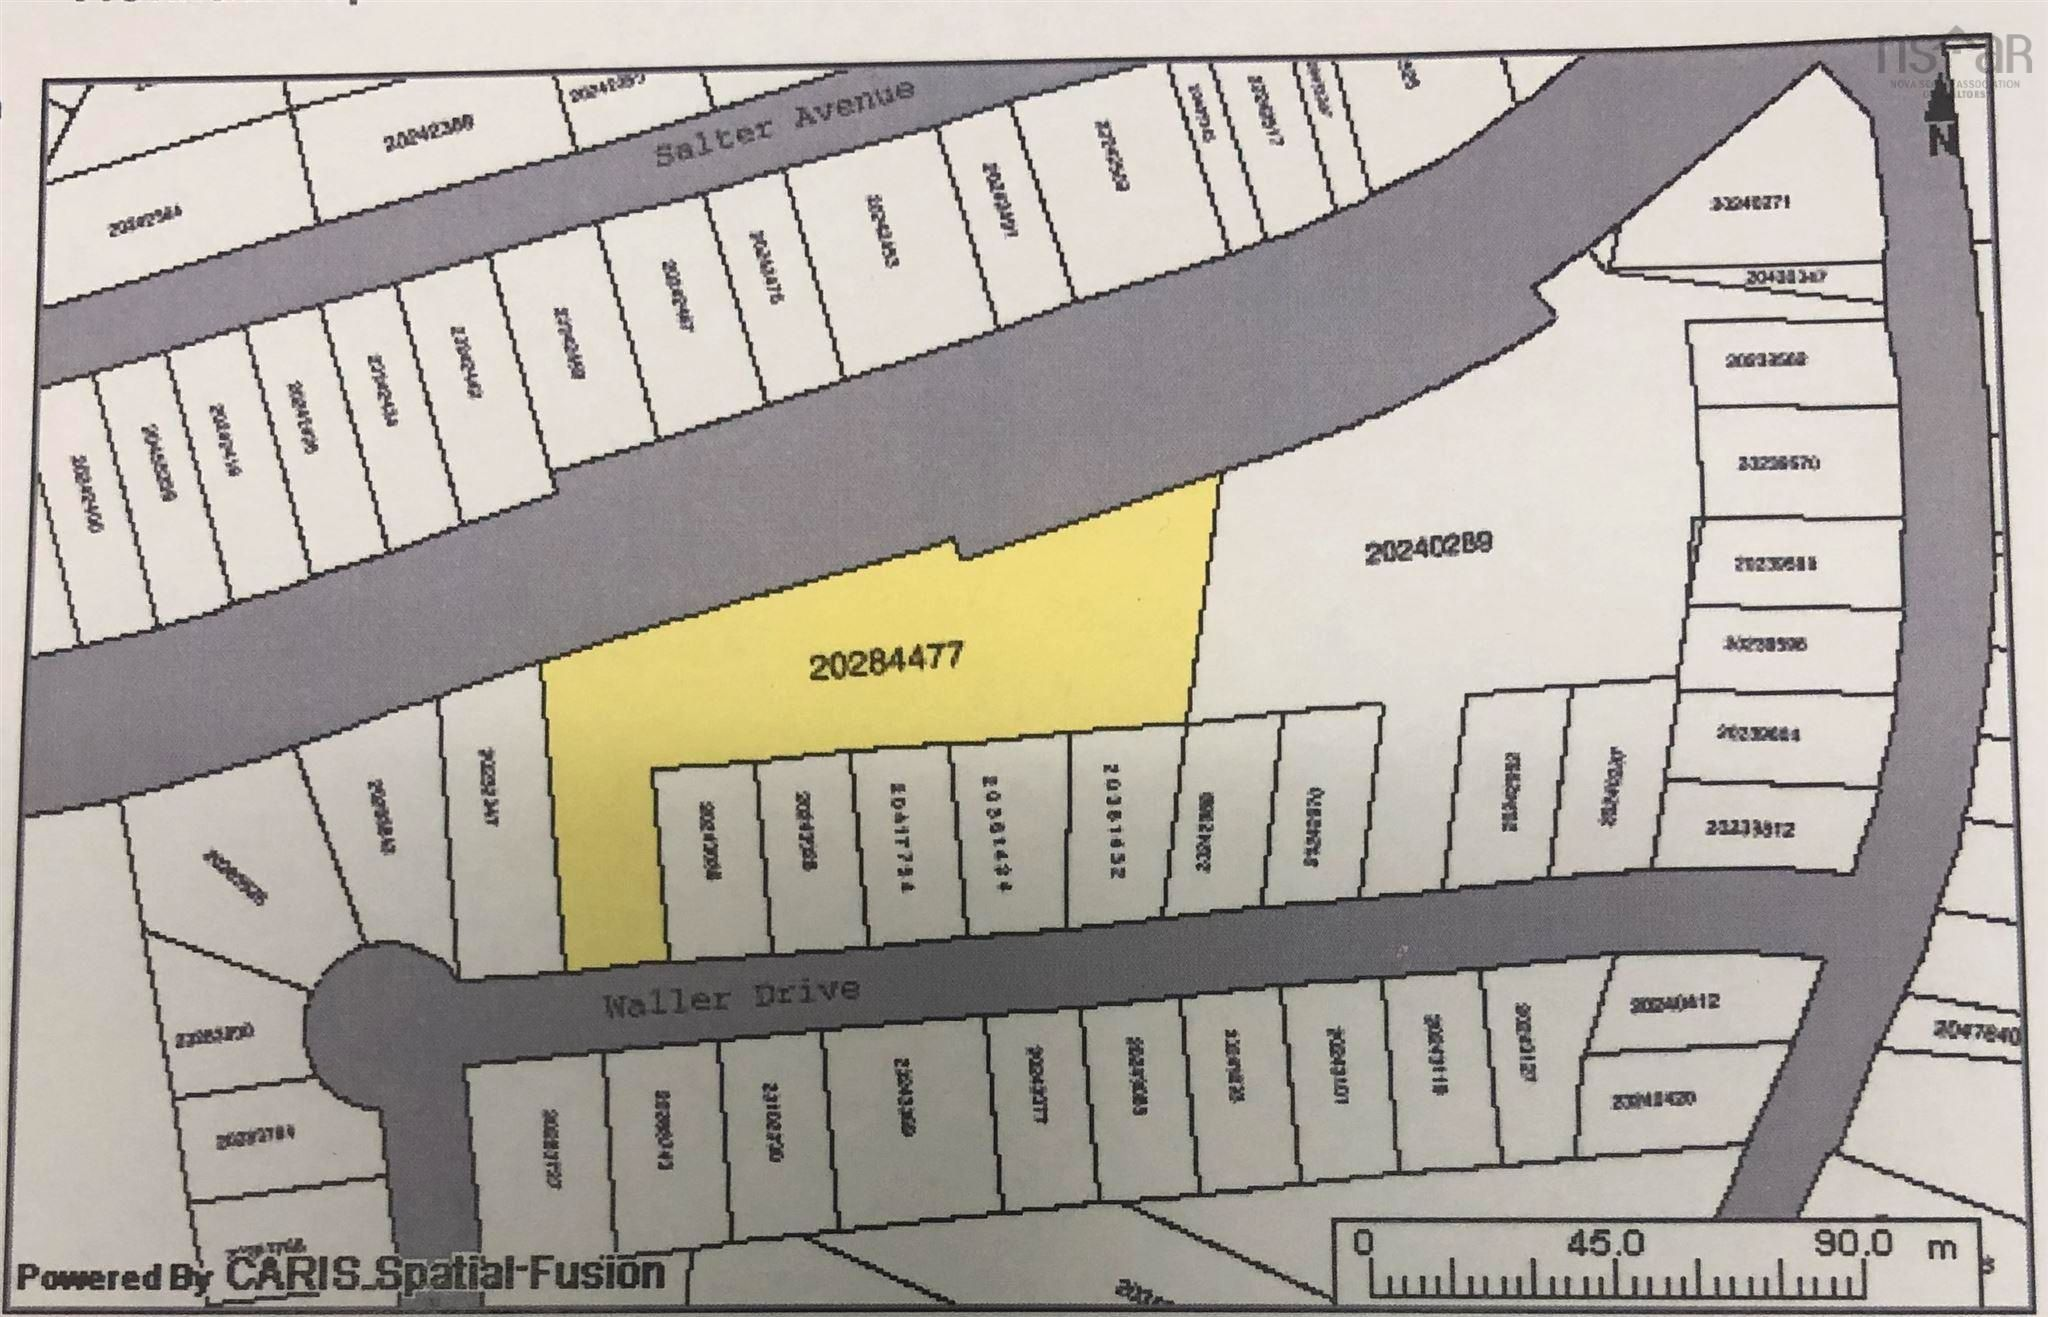 Main Photo: 147 Waller Drive in Truro: 104-Truro/Bible Hill/Brookfield Vacant Land for sale (Northern Region)  : MLS®# 202123661